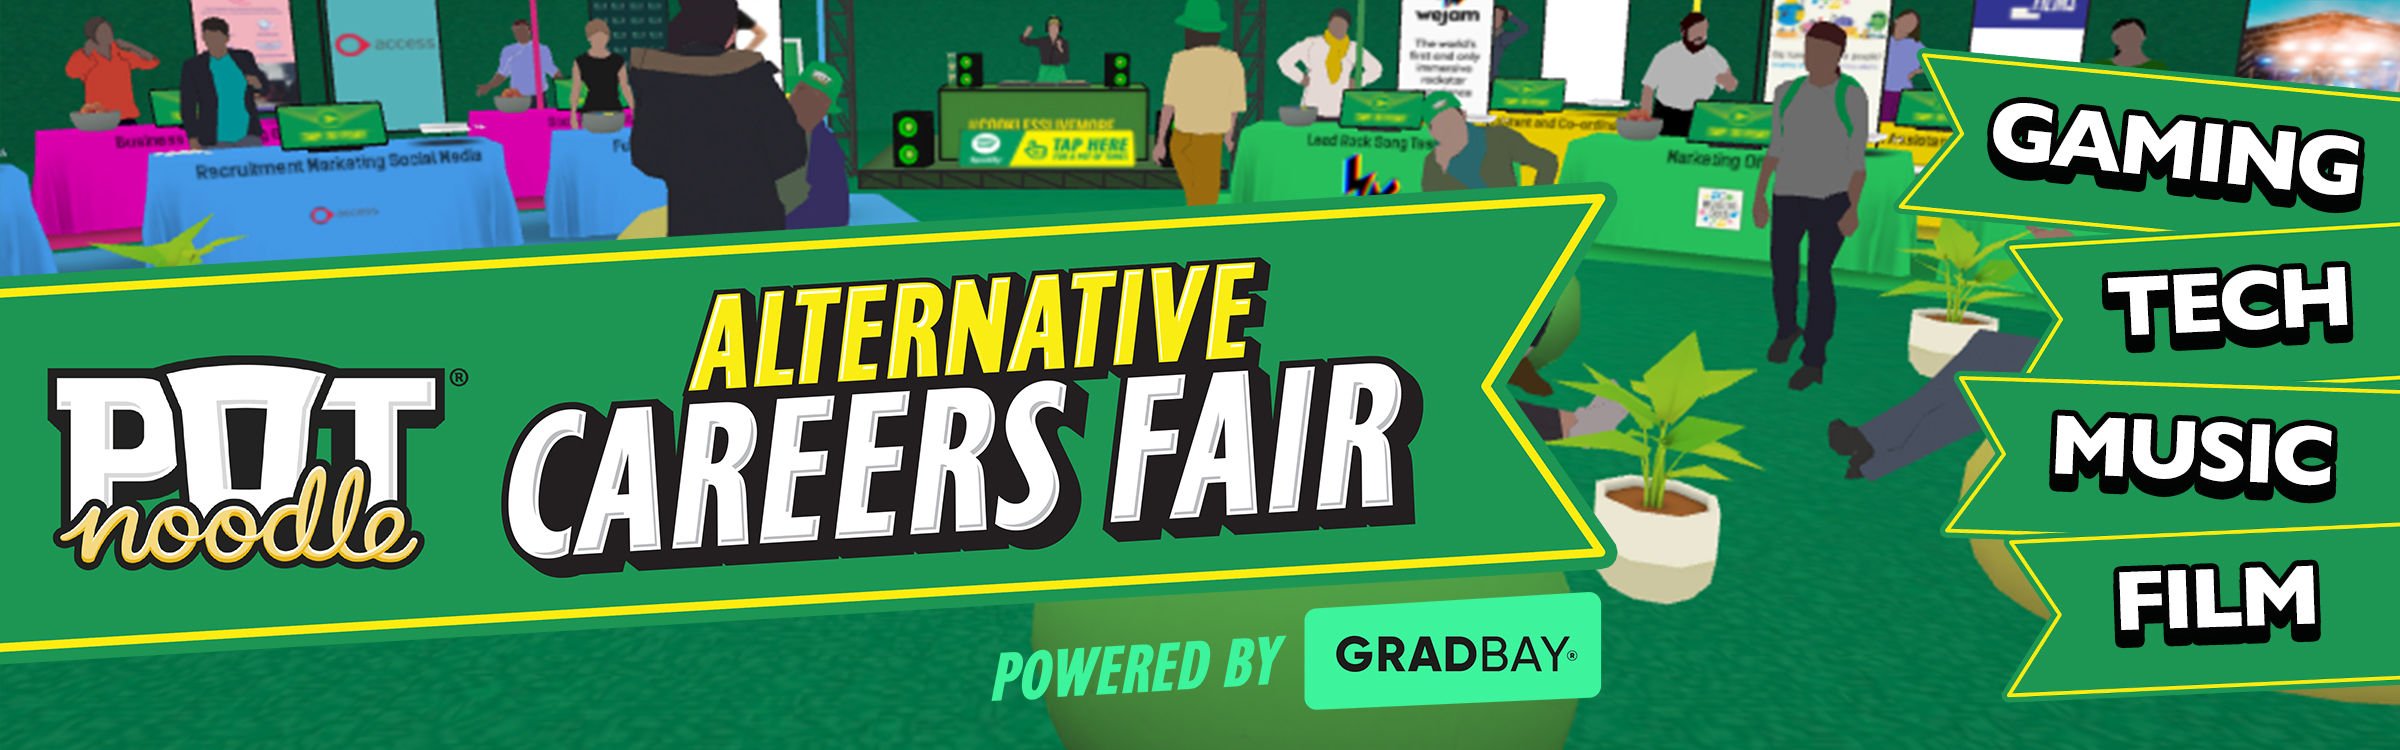 virtual alternative careers fair